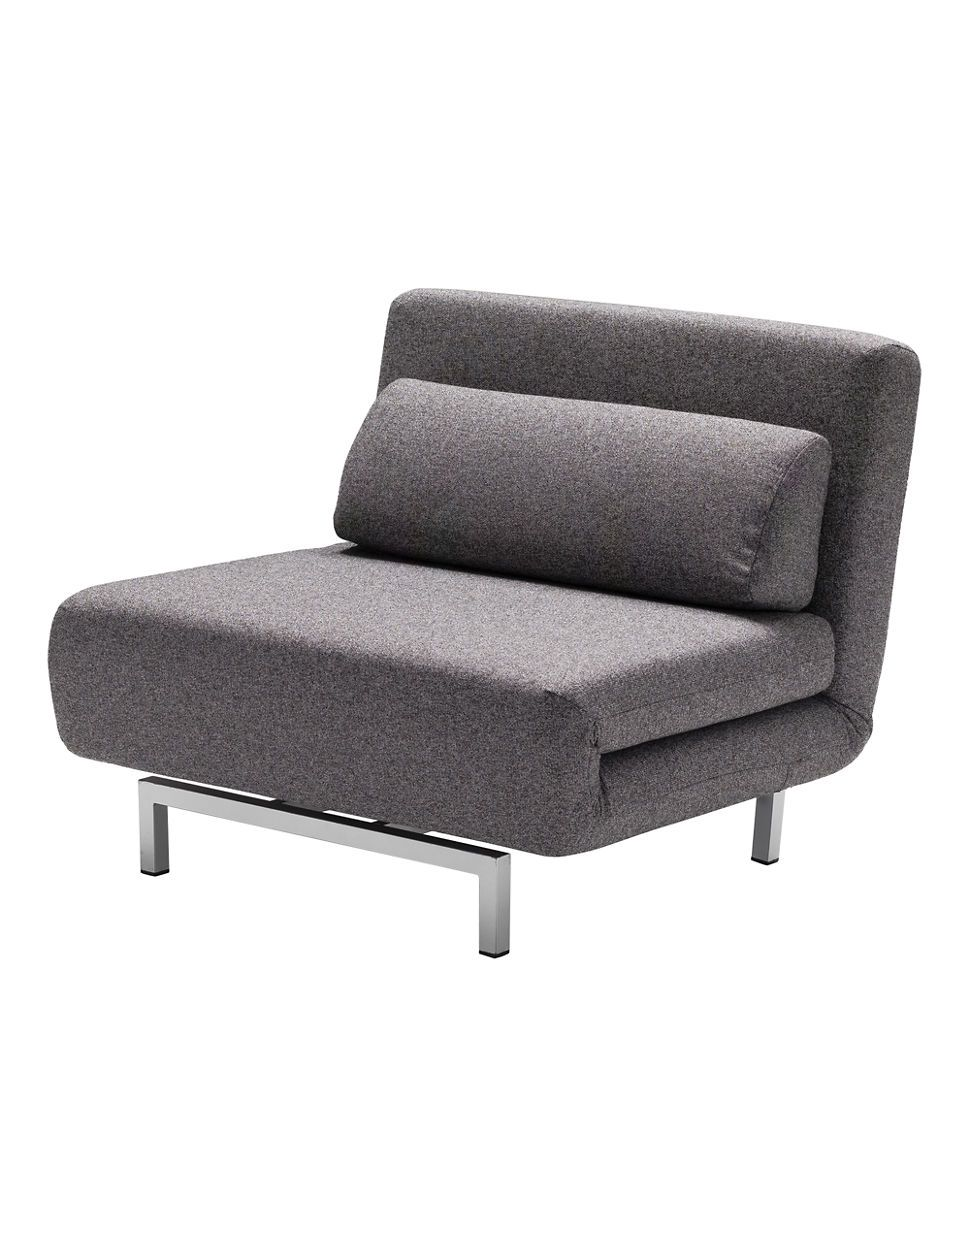 Cool Home Sofas Iso Flip Chair Sofa Bed Hudsons Bay Ncnpc Chair Design For Home Ncnpcorg